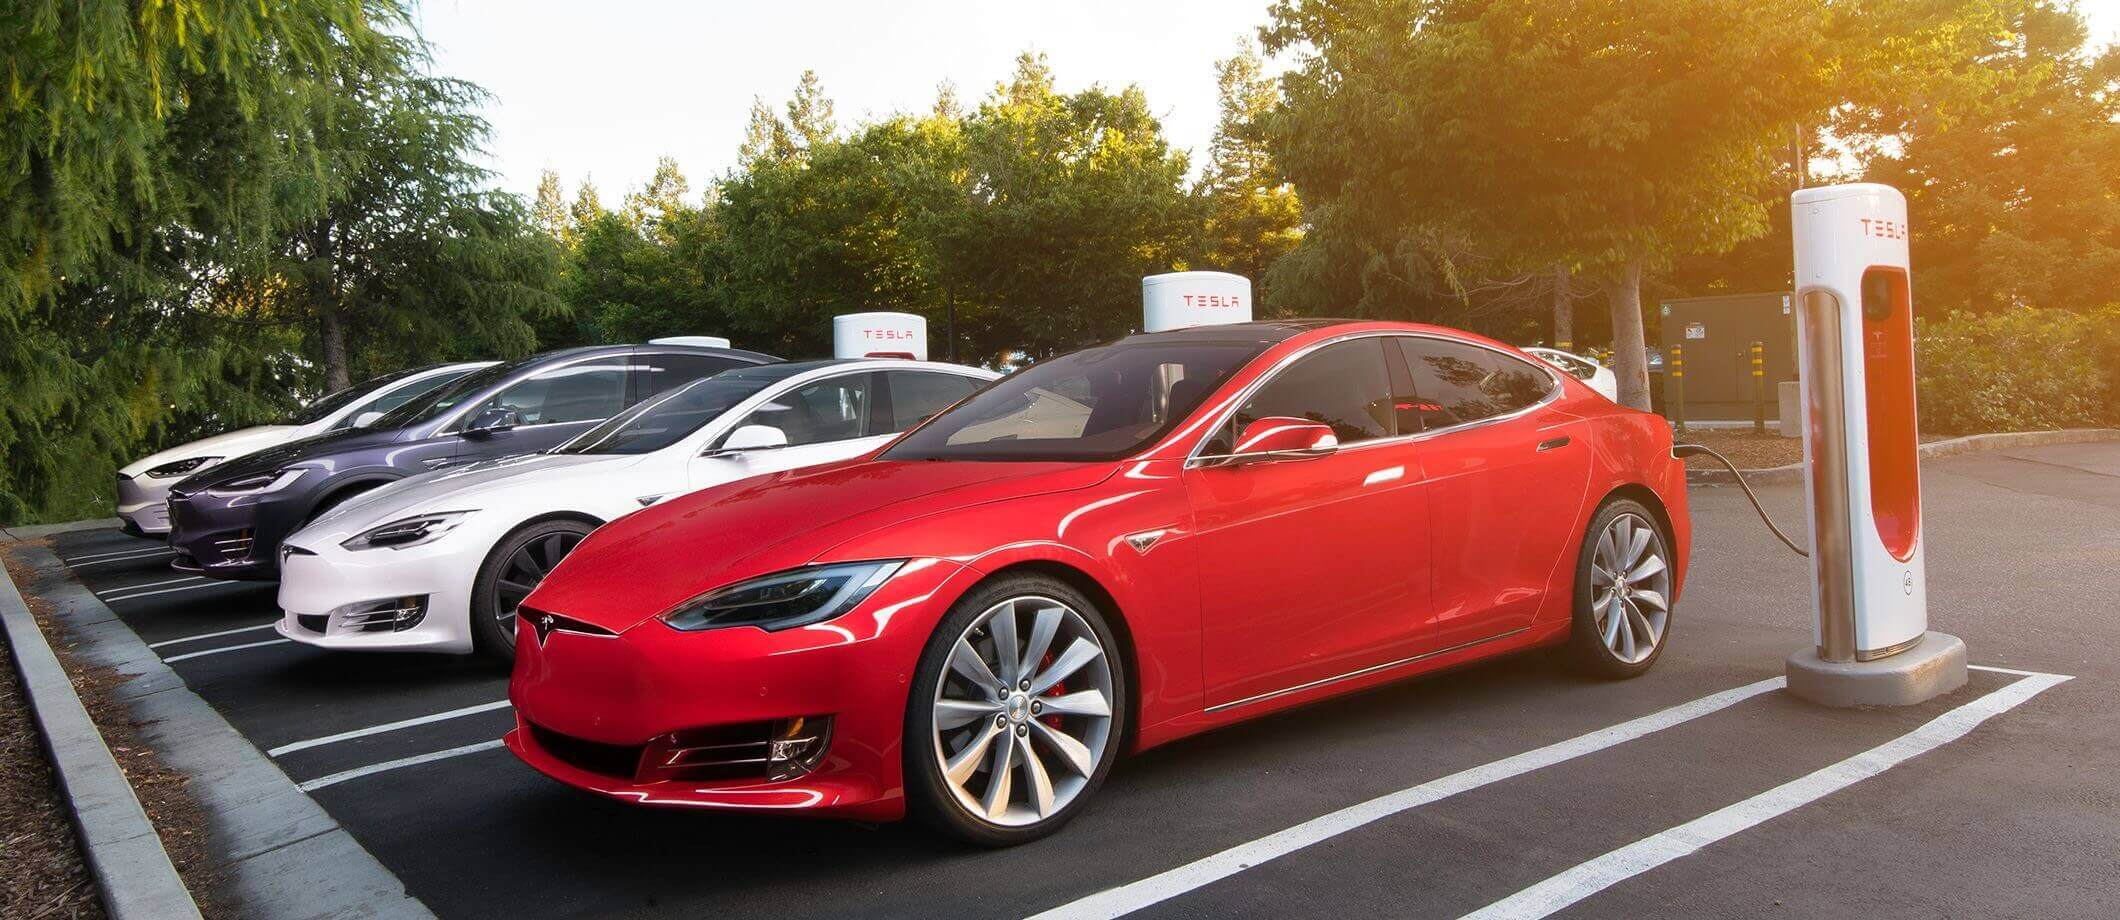 Nearly 50 million Americans are looking at electric vehicles for their next purchase